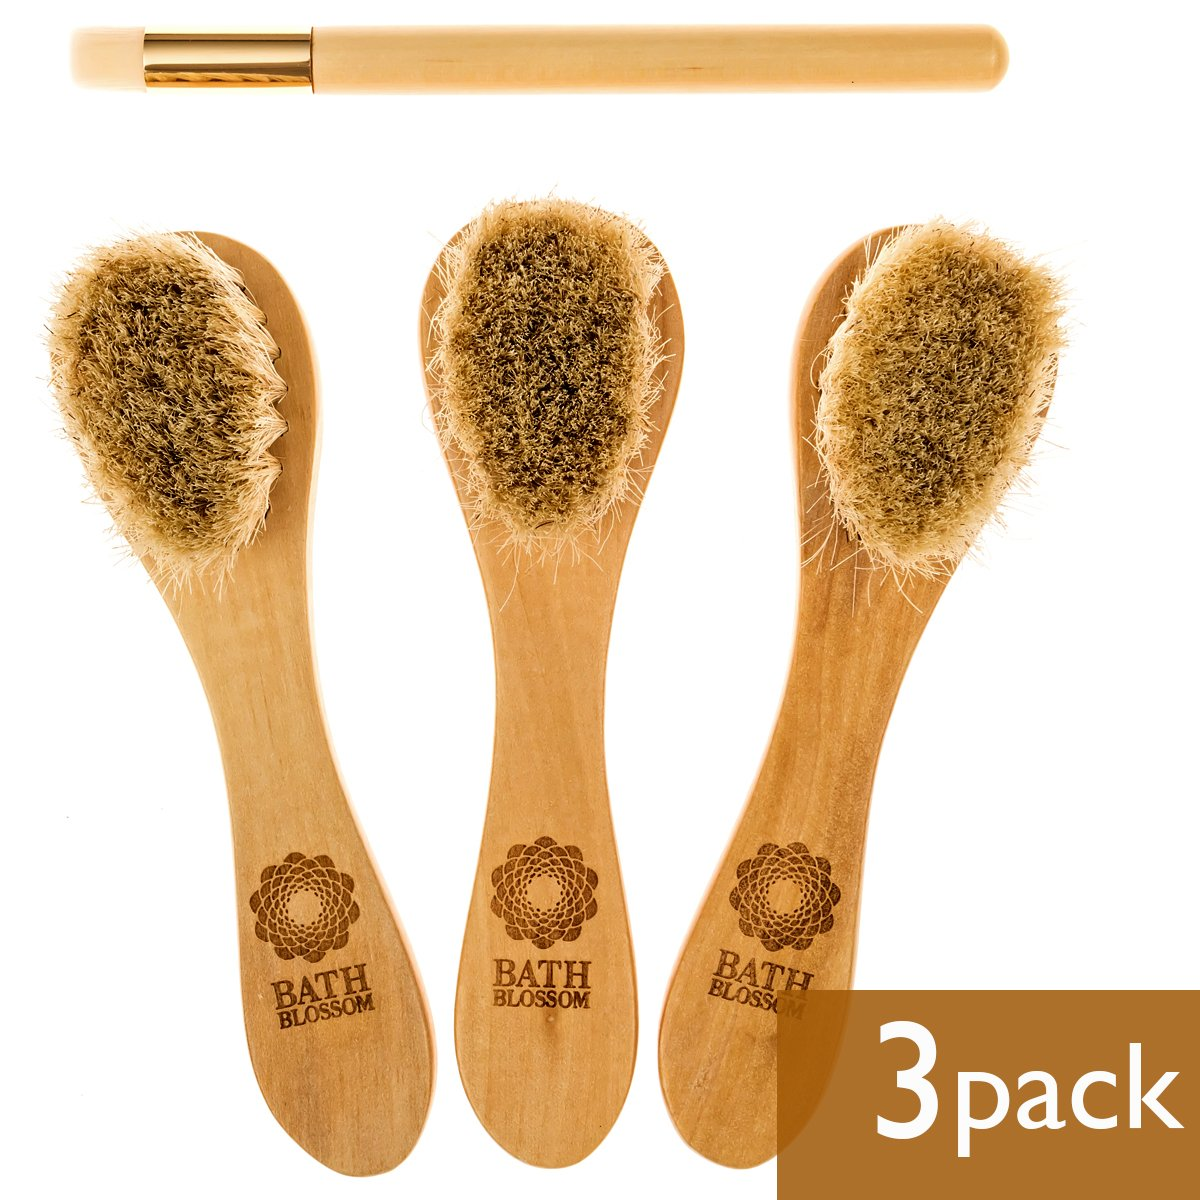 Bath Blossom Face Cleansing Brush for Facial Exfoliation - Skin Cleaning Scrubber Brush - Natural Bristles Exfoliating Face Brushes for Dry Brushing and Scrubbing - Suitable for Men and Women